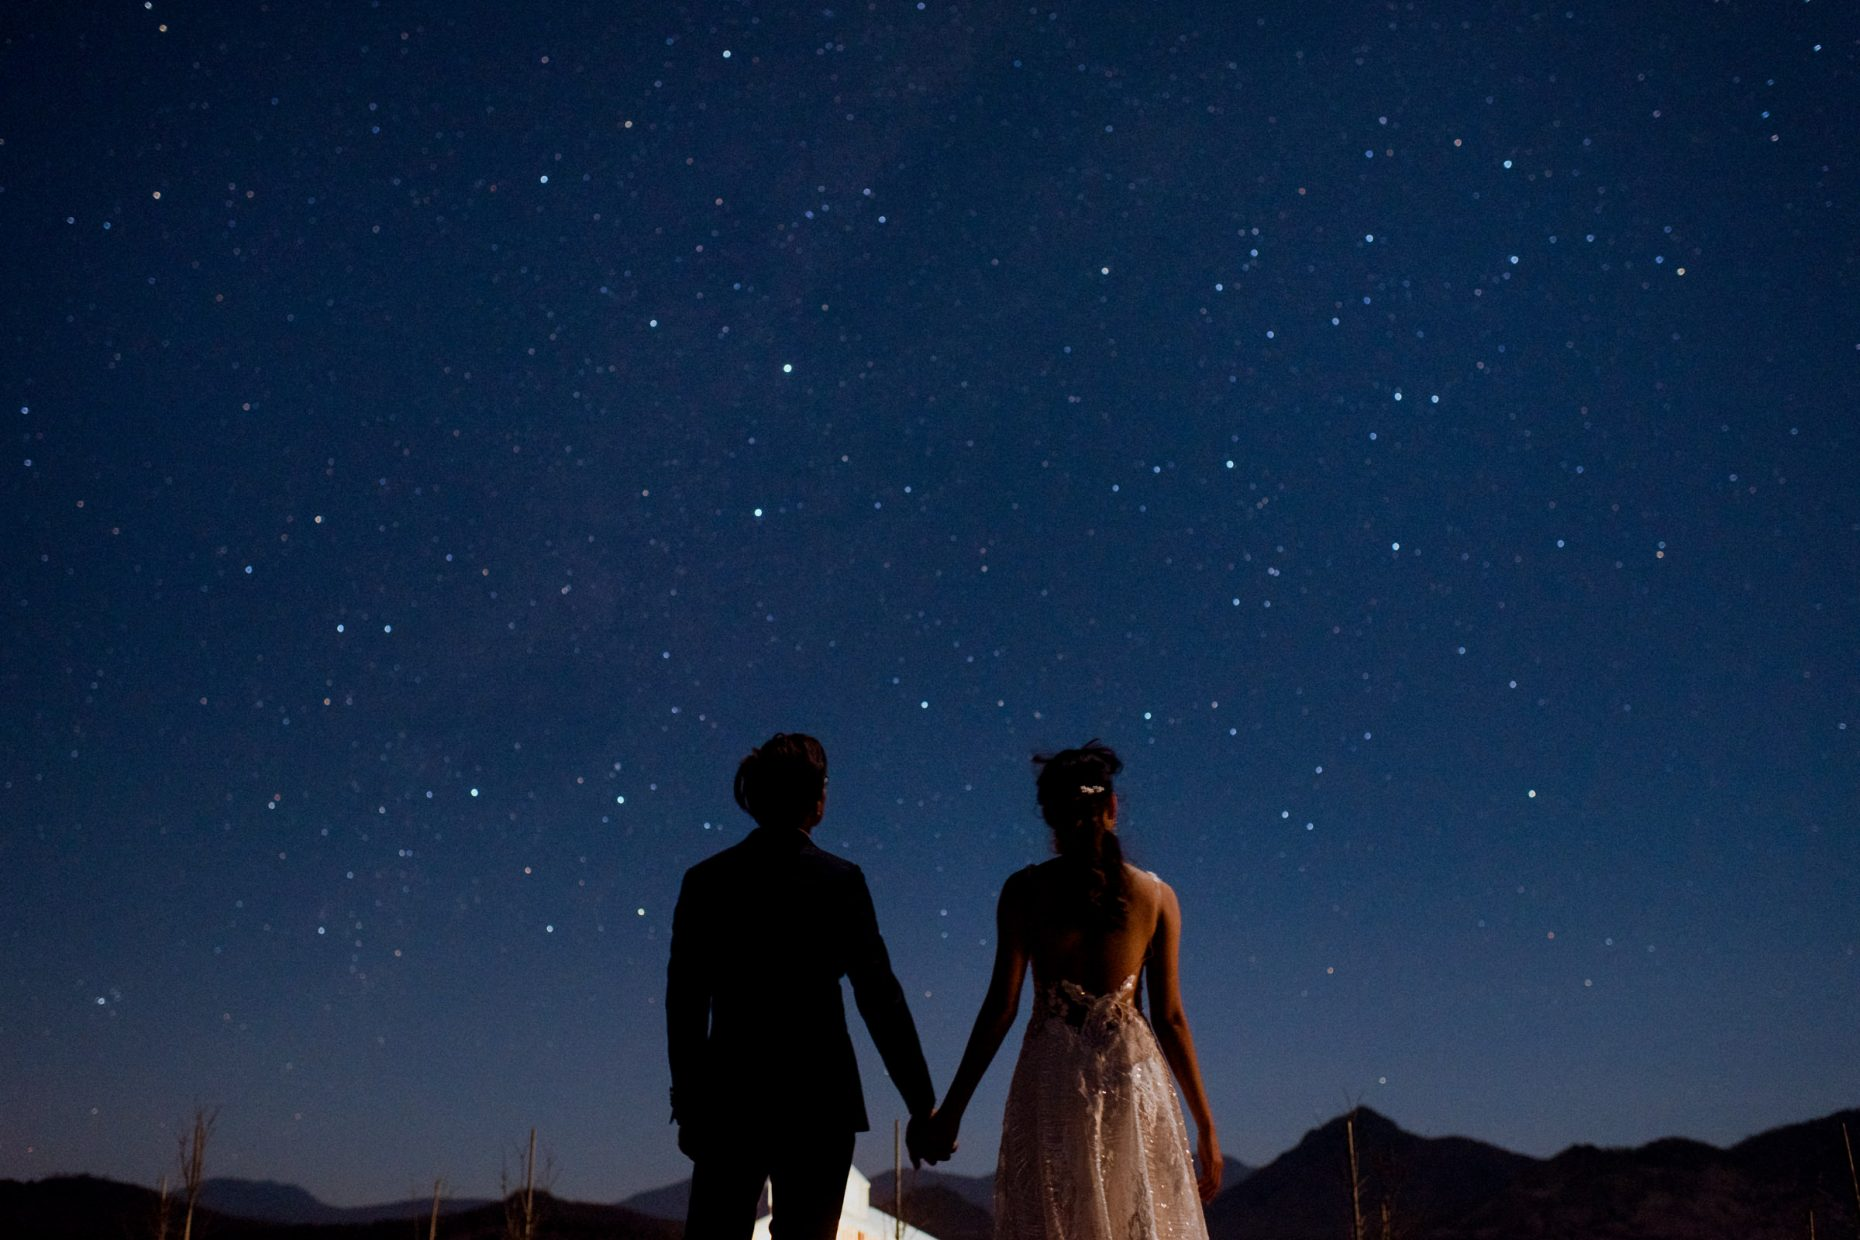 Two people hold hands as they look into a starry blue night sky